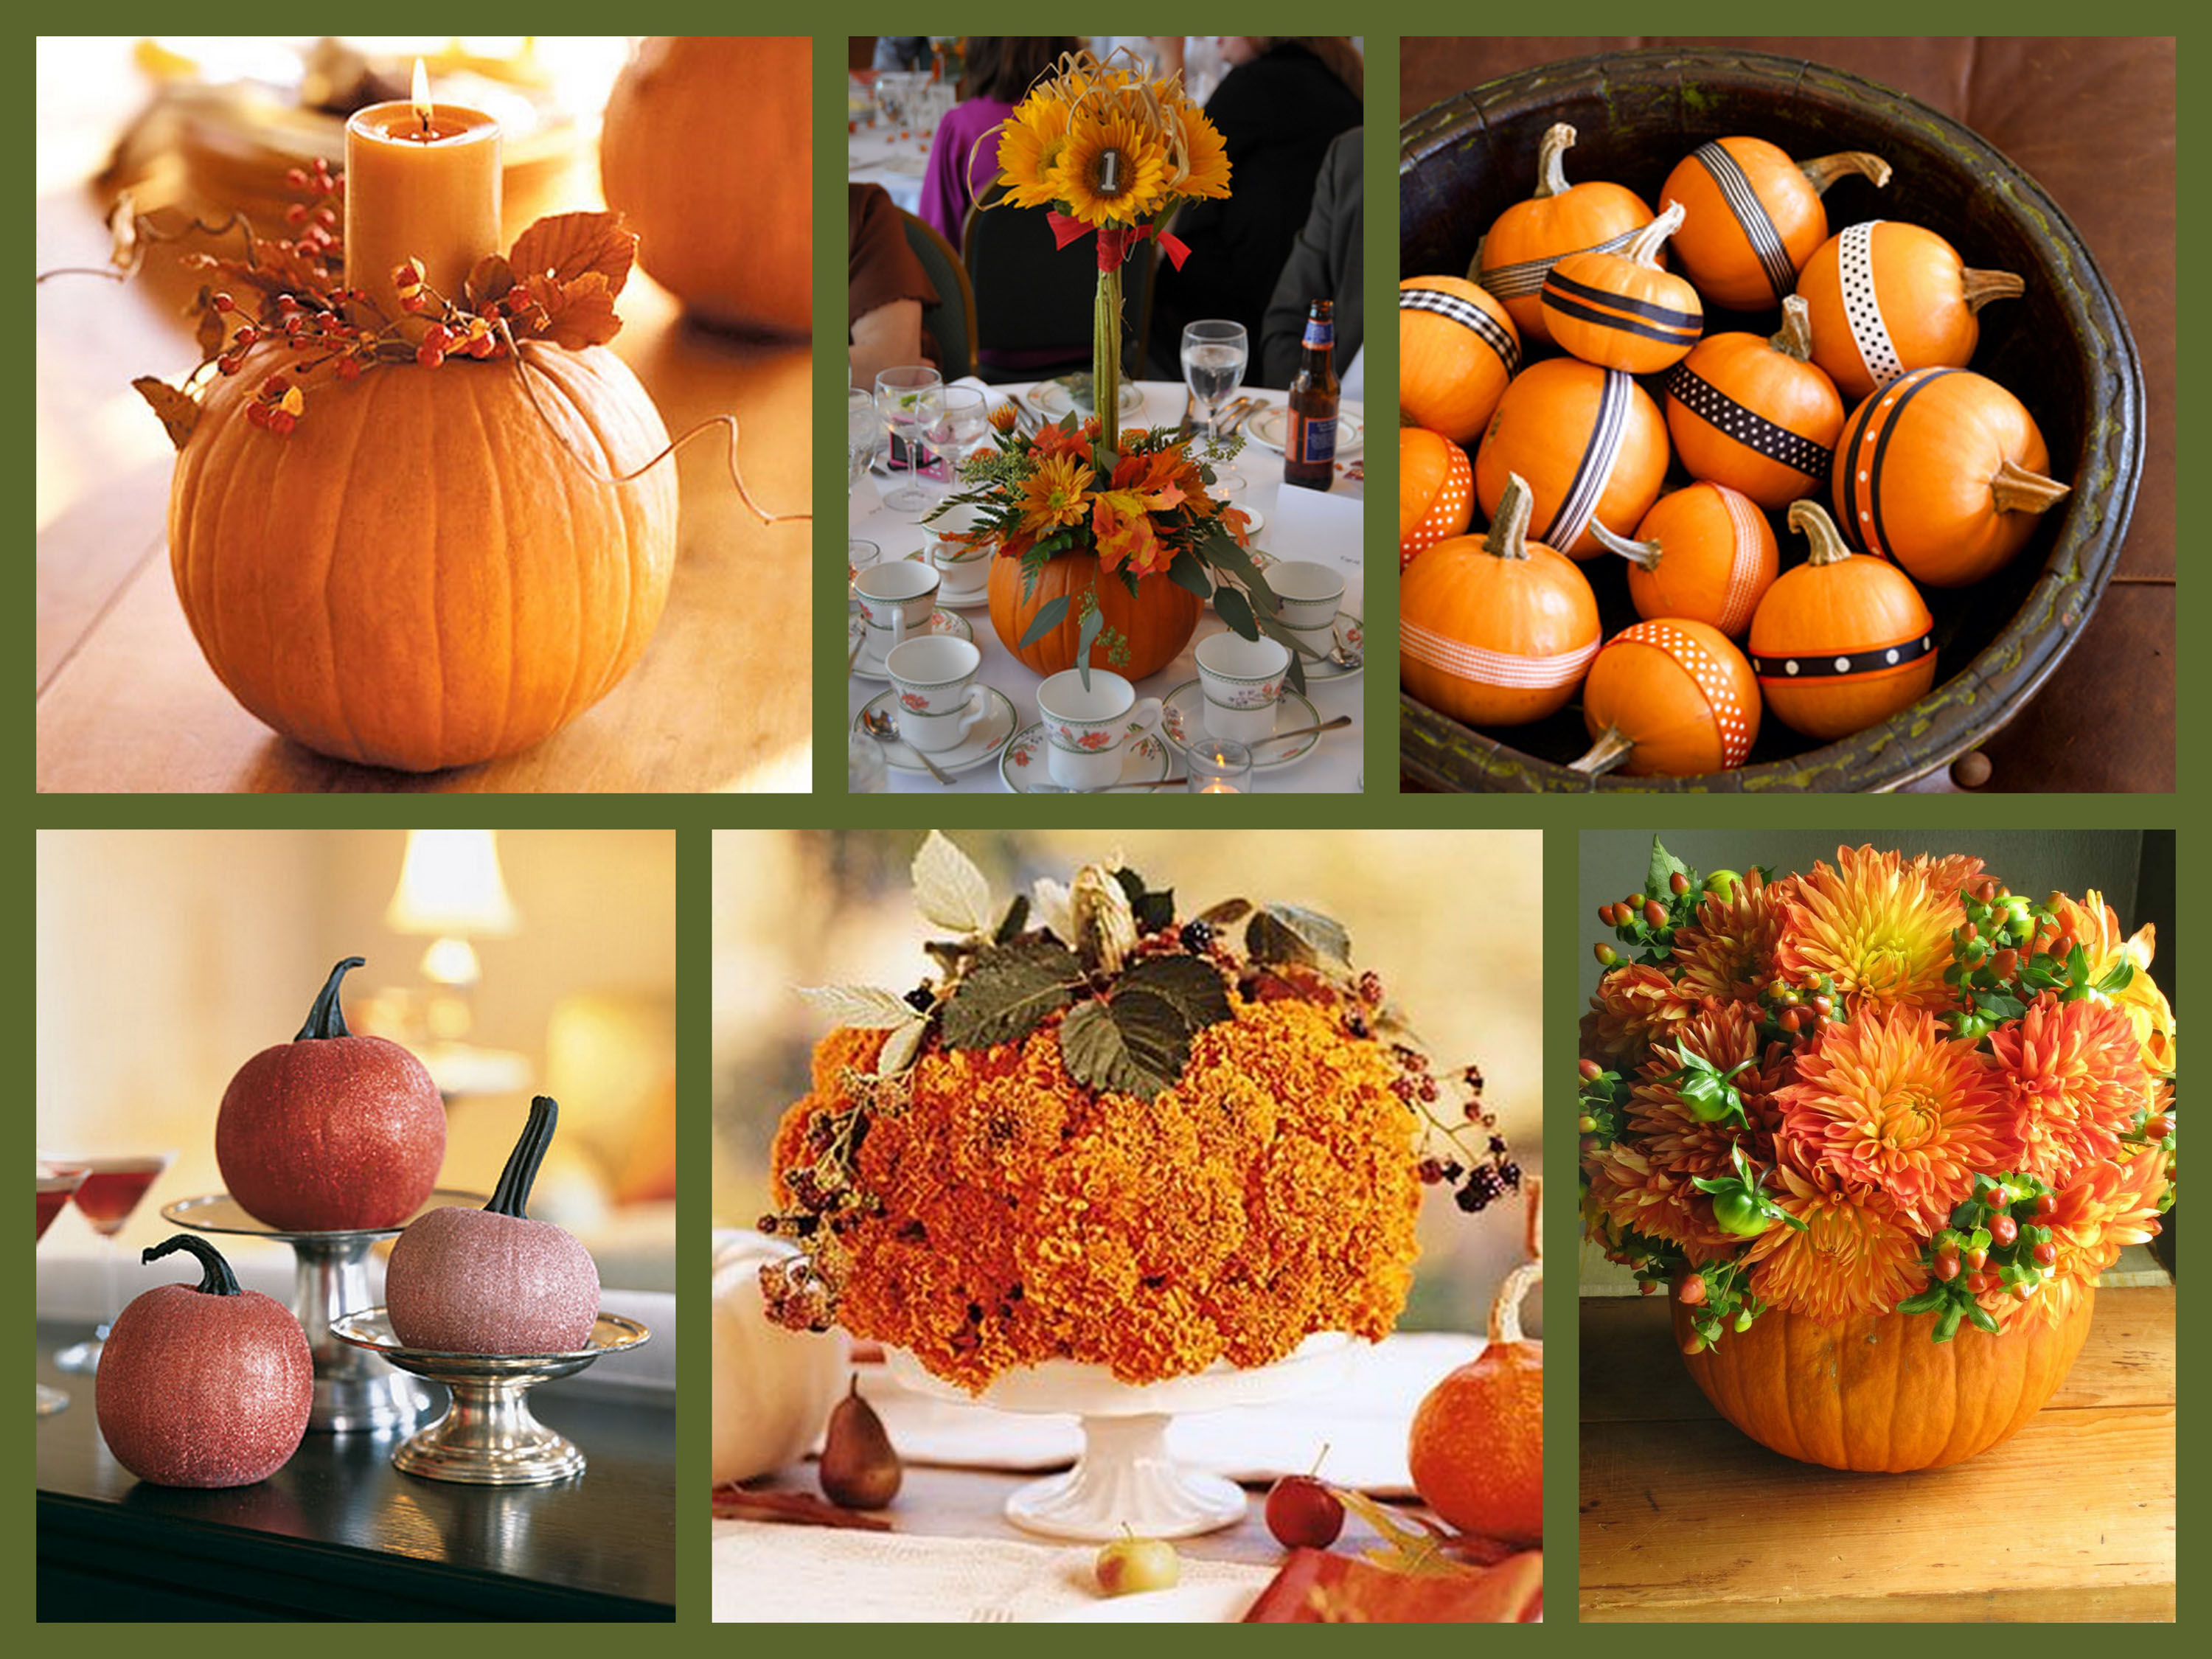 Autumn decorating inspiration pictures photos and images for Autumn wedding decoration ideas